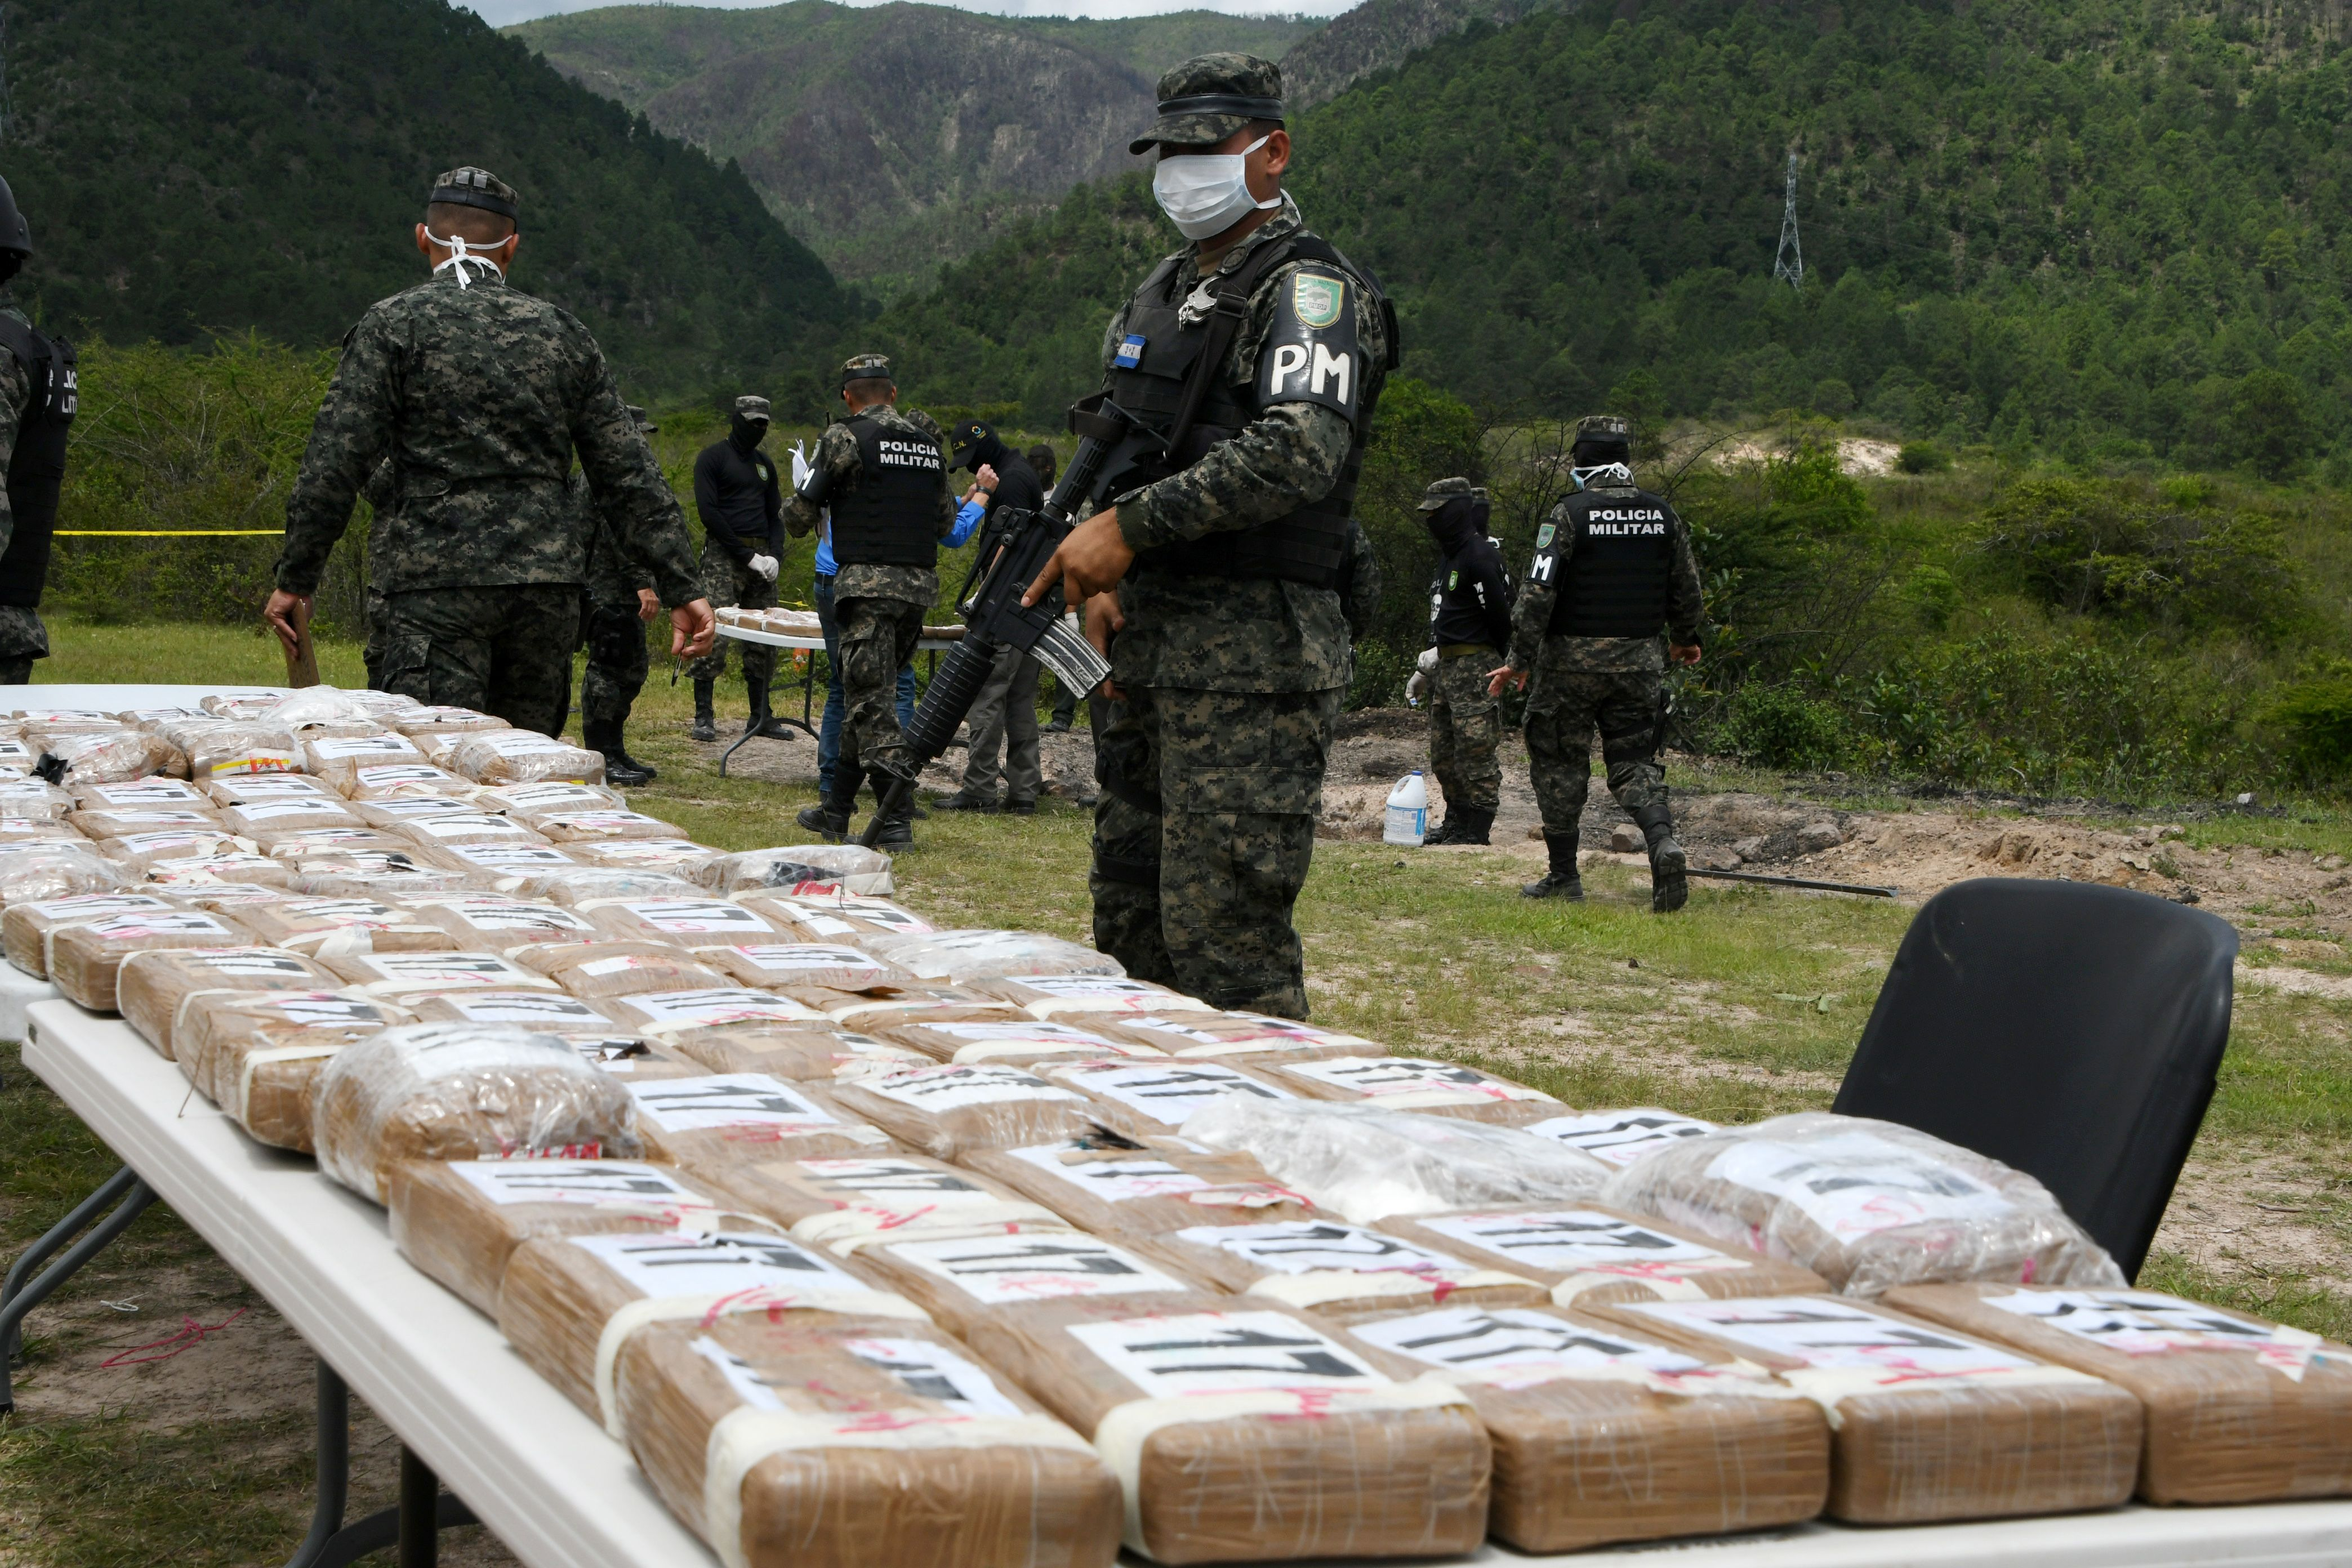 Authorities incinerate a load of cocaine seized to two Colombian nationals navigating along the Caribbean, in Tegucigalpa, on July 11, 2017. (ORLANDO SIERRA/AFP/Getty Images)